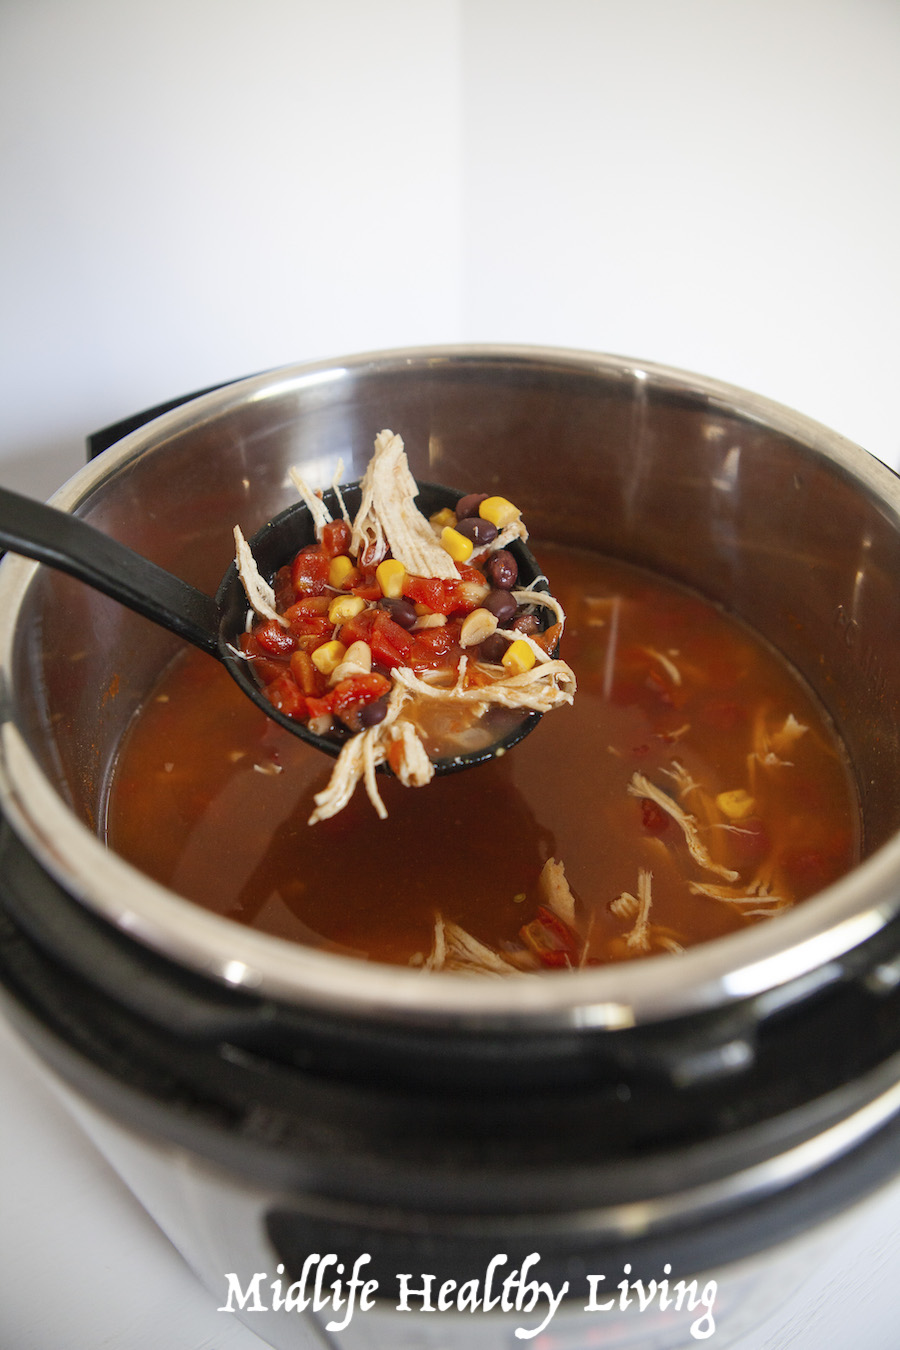 A look into the instant pot at the finished chili recipe ready to serve.